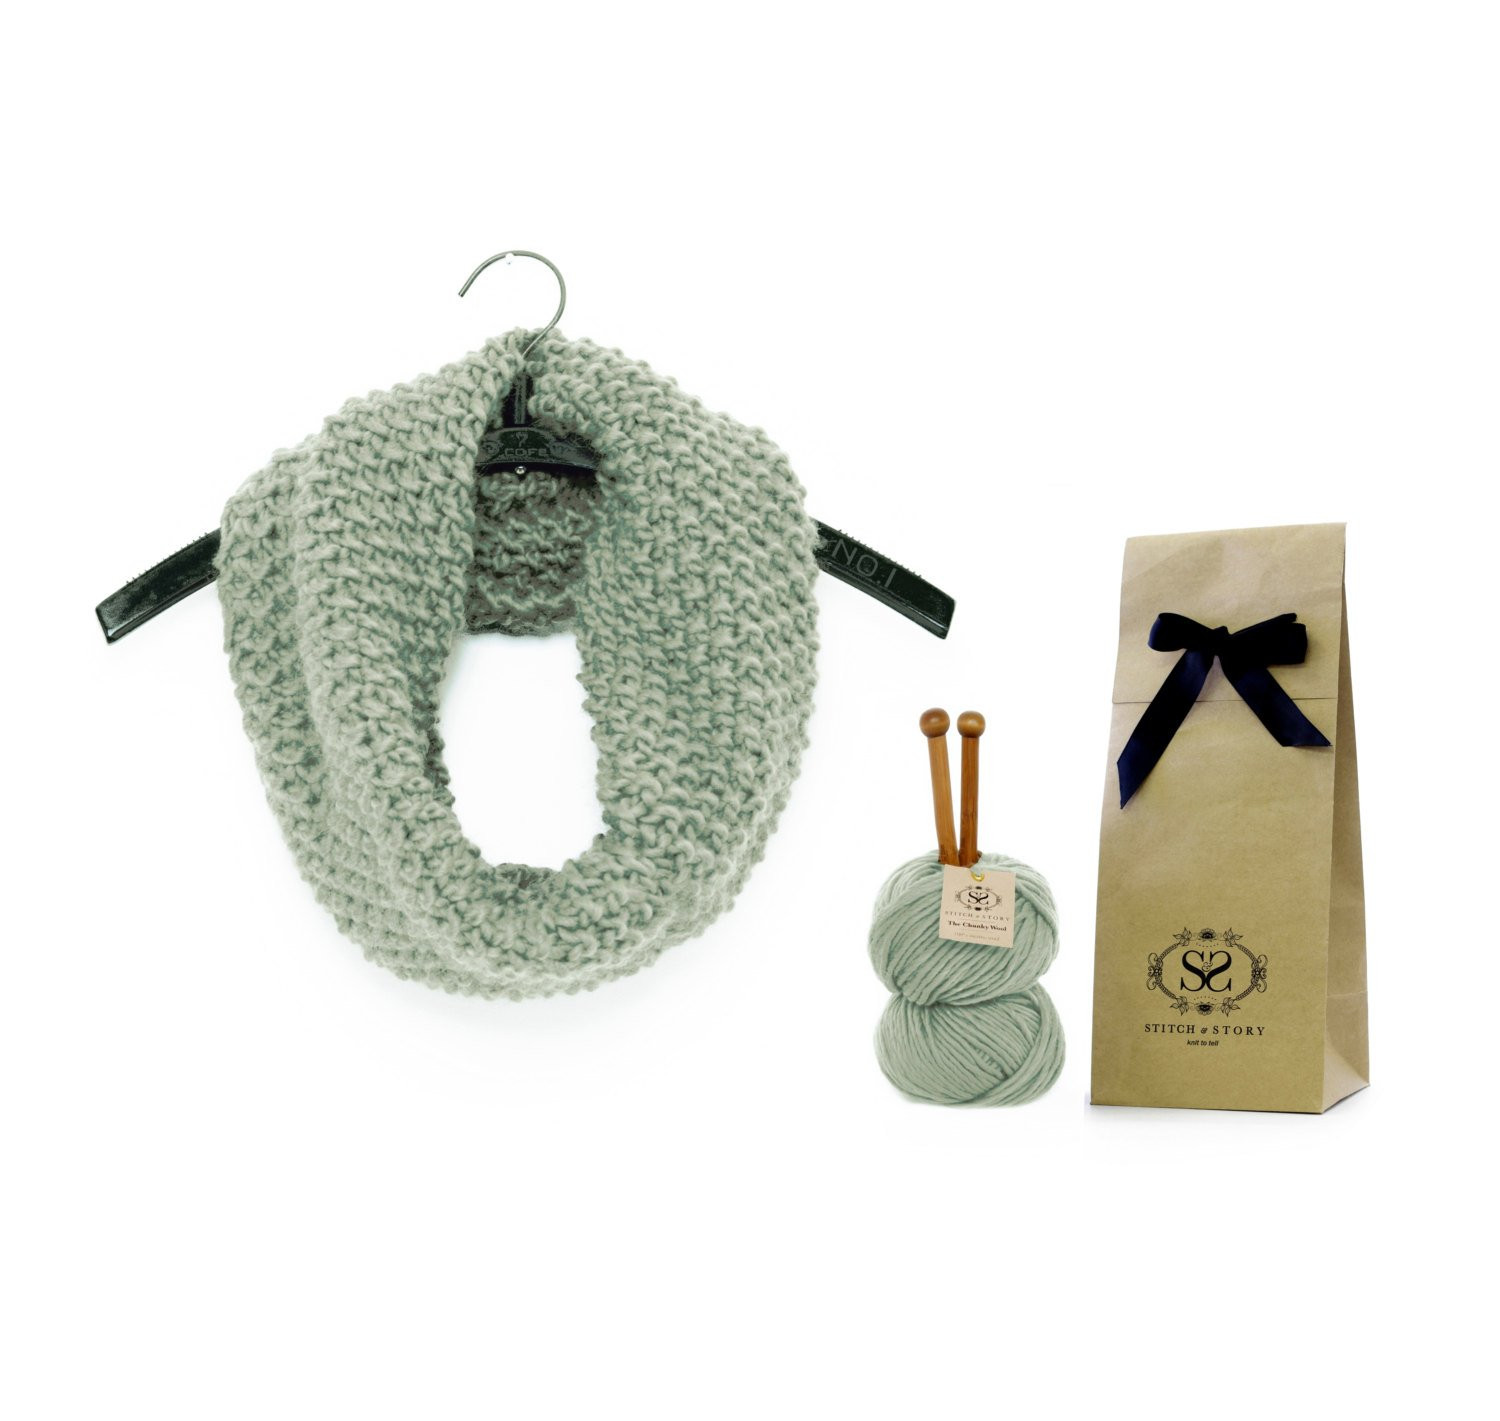 Knitting Kits Awesome Beginners Knitting Kit Learn to Knit Diy Set Infinity Scarf Of Perfect 44 Images Knitting Kits